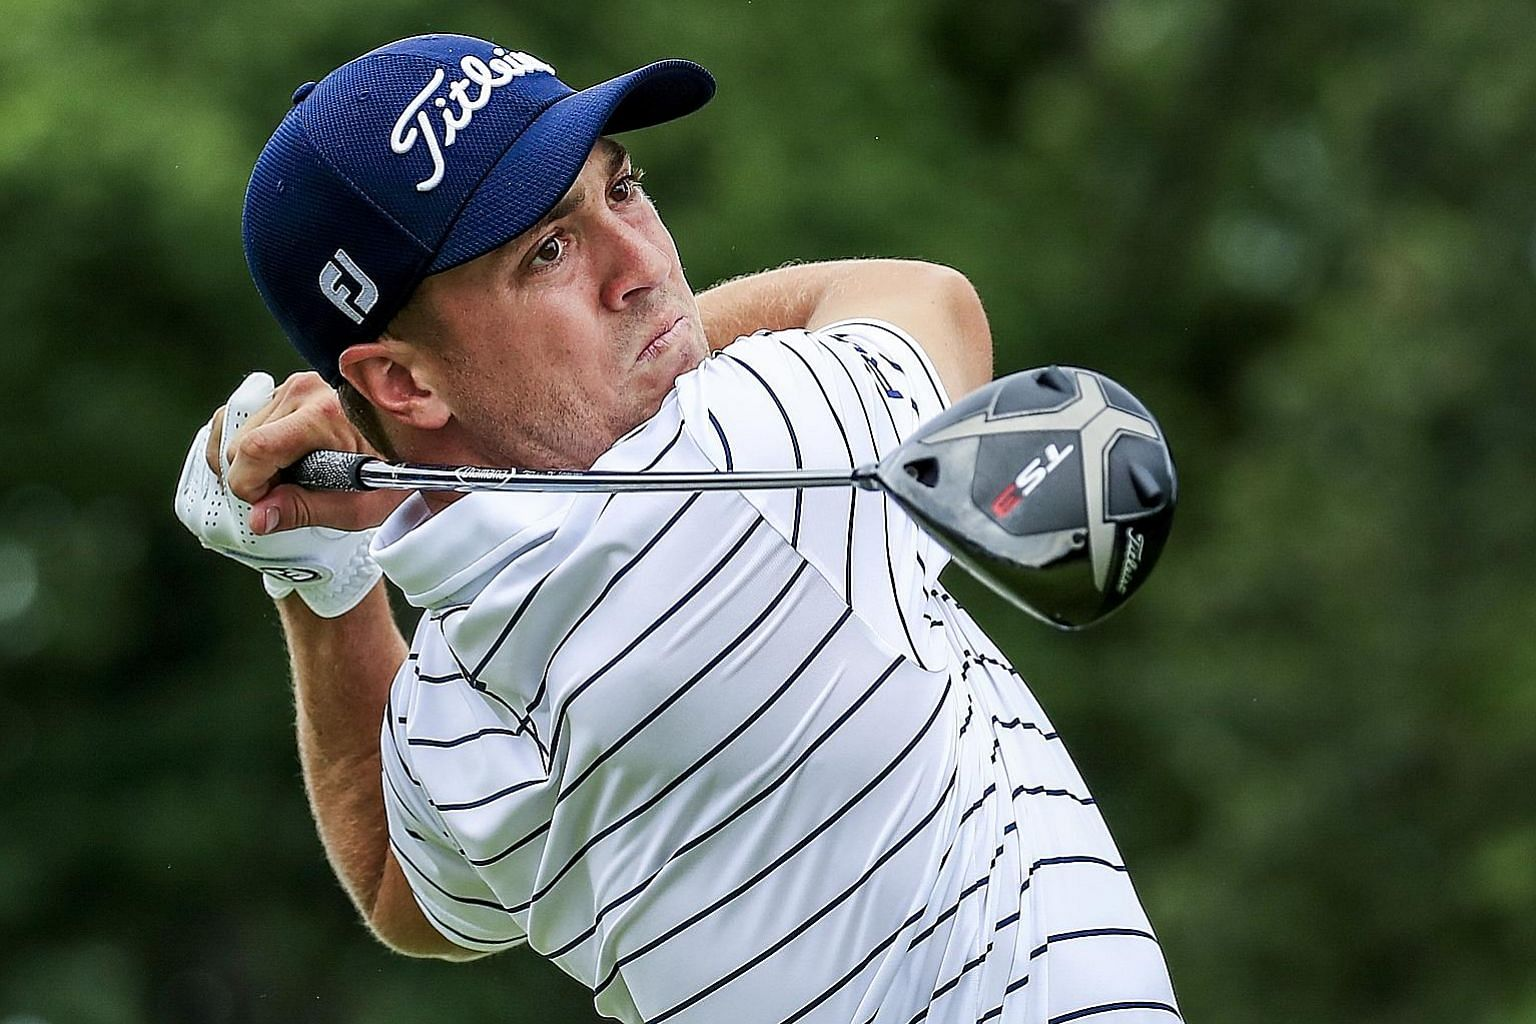 Justin Thomas, with a six-shot lead going into yesterday's fourth round, is in the driver's seat to win the BMW Championship at Medinah Country Club in Illinois. His last title came at the Bridgestone Invitational last August. PHOTO: EPA-EFE